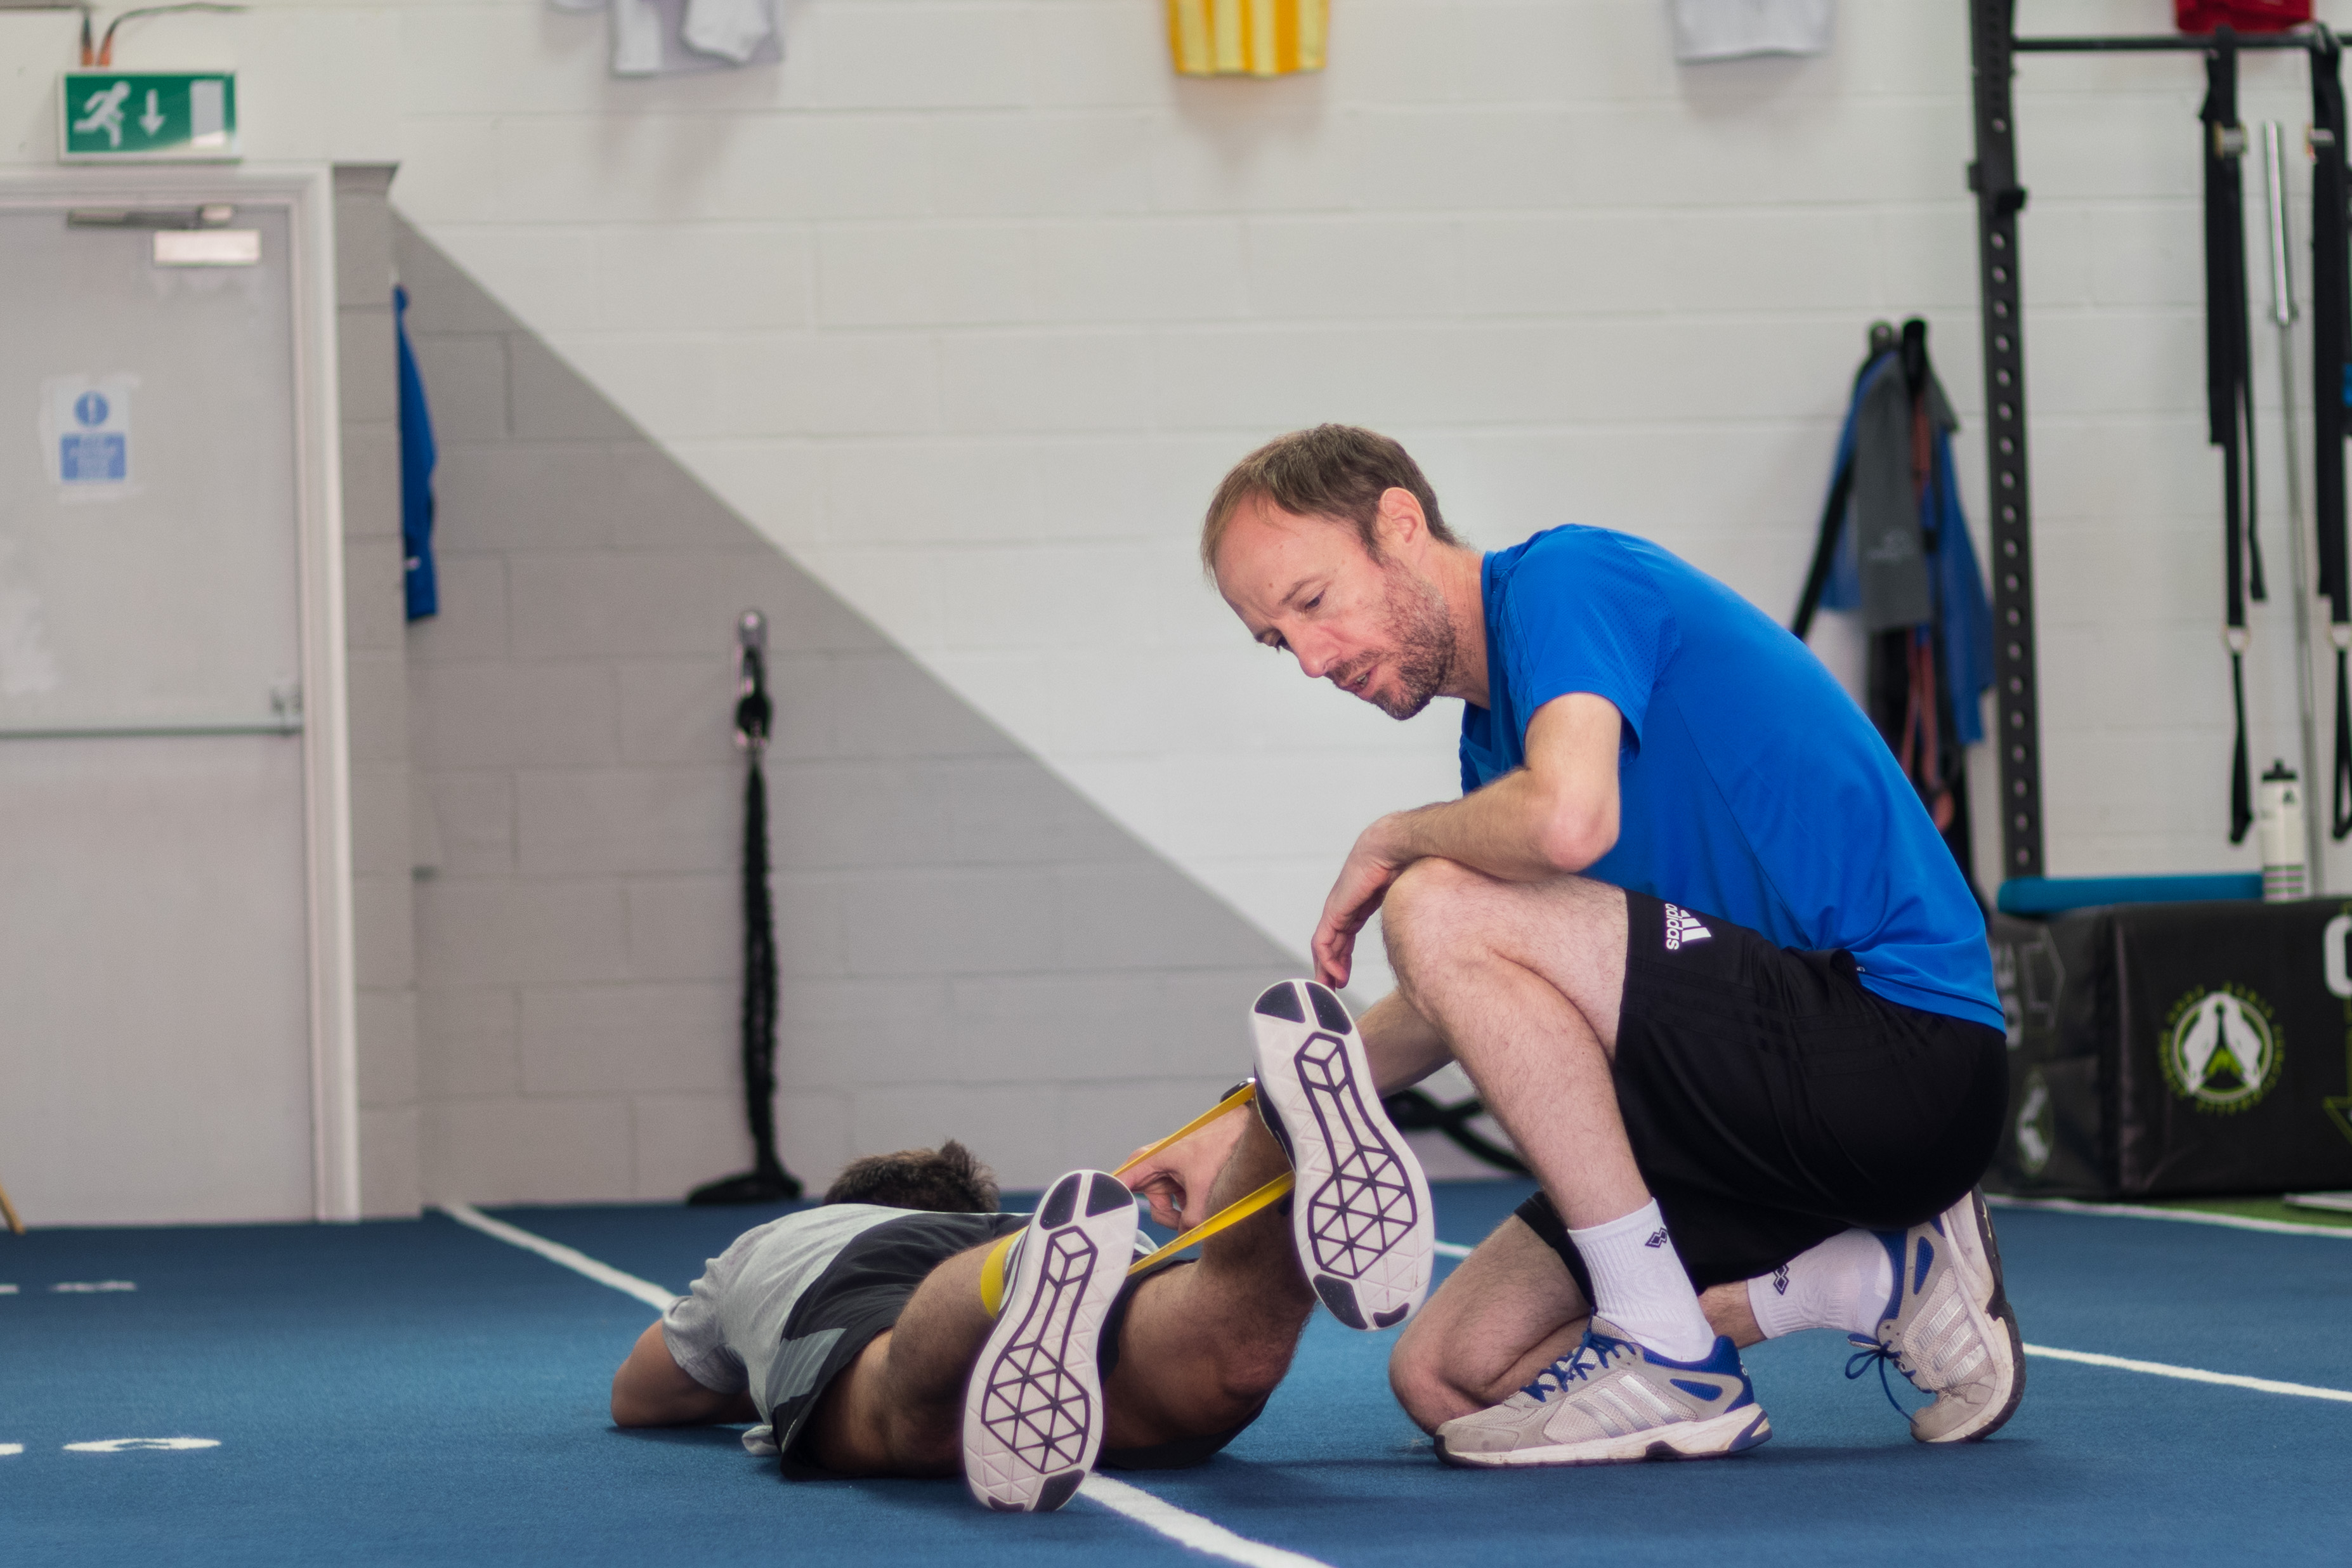 Physiotherapy at GoPerform